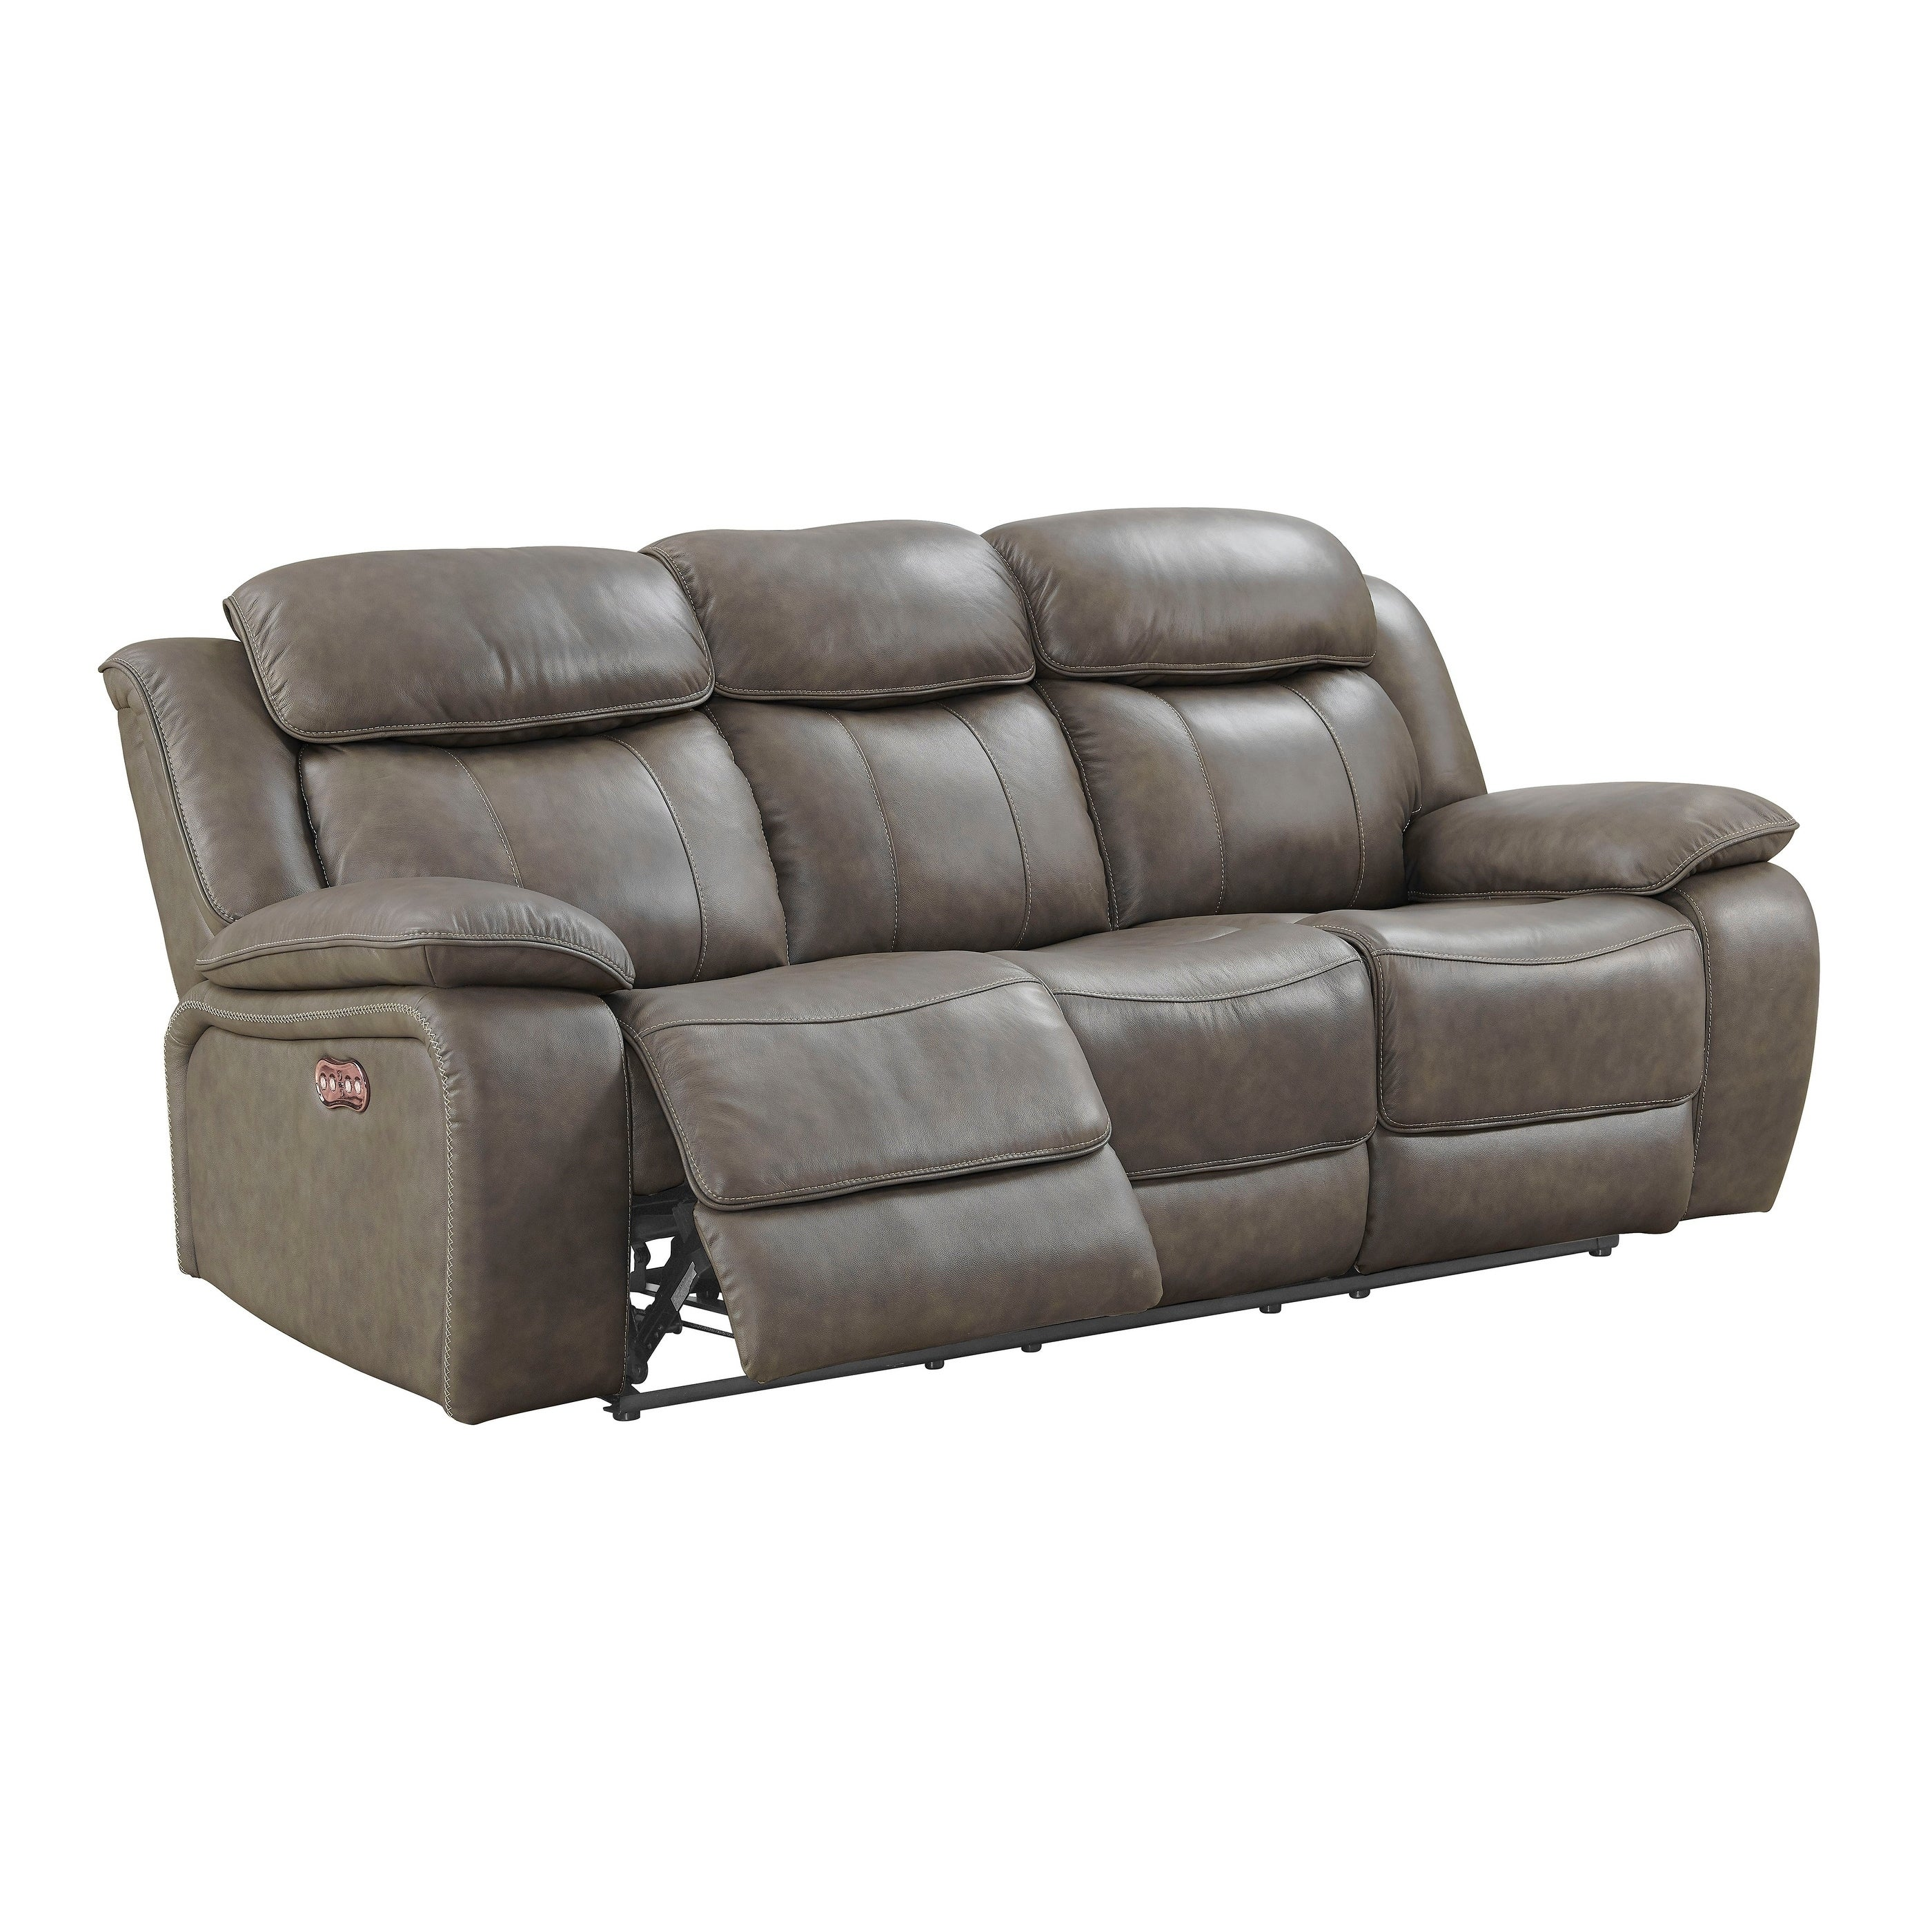 Shop Anya Grey Dual Recliner Sofa On Sale Free Shipping Today